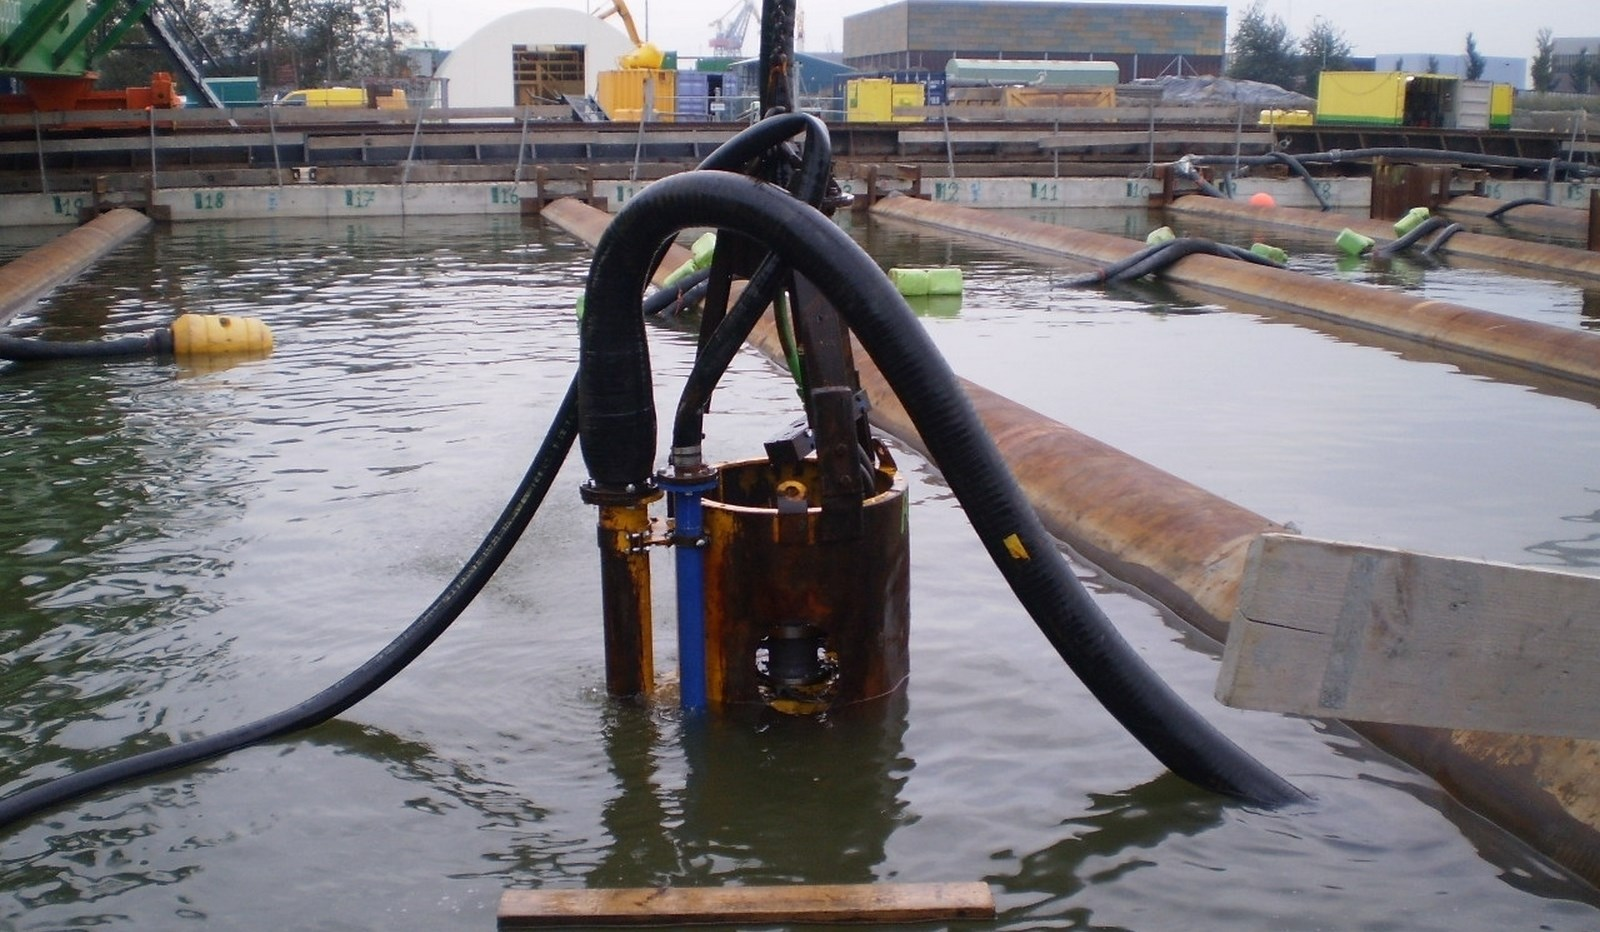 DOP Submersible Dredge Pump 200 - Hydraulically driven